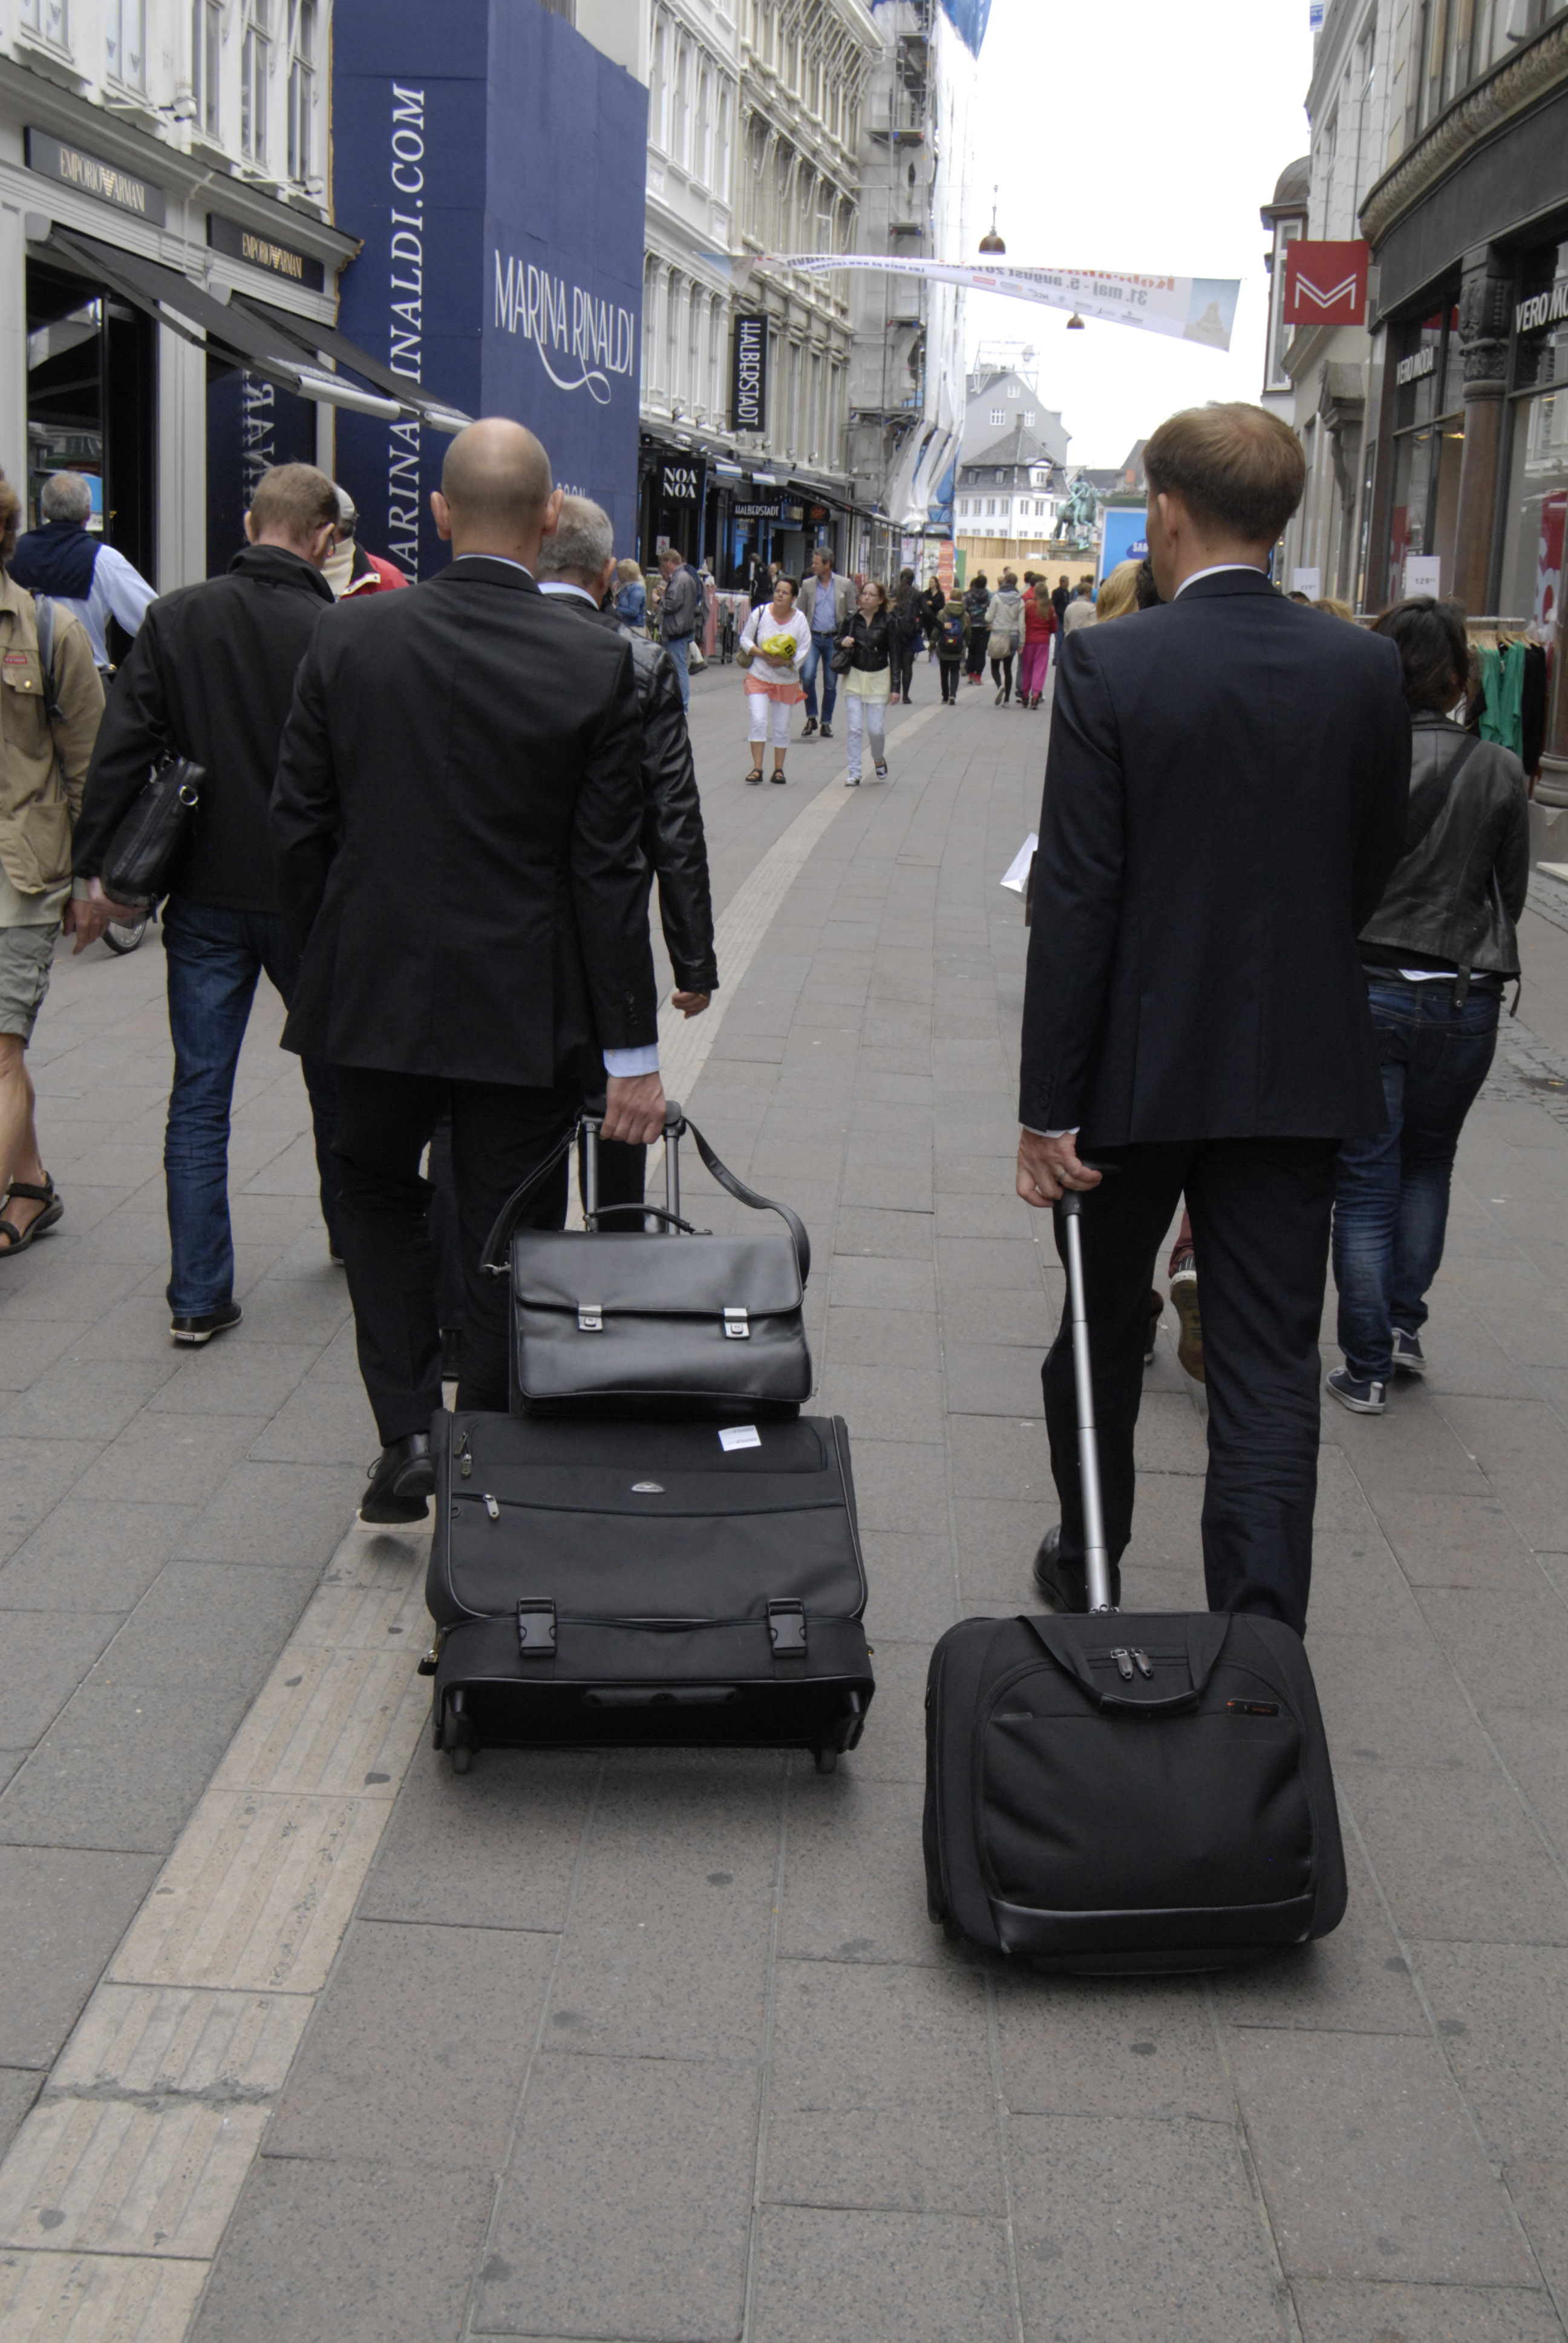 Businessmen with roller suitcases navigate a street in Copenhagen.